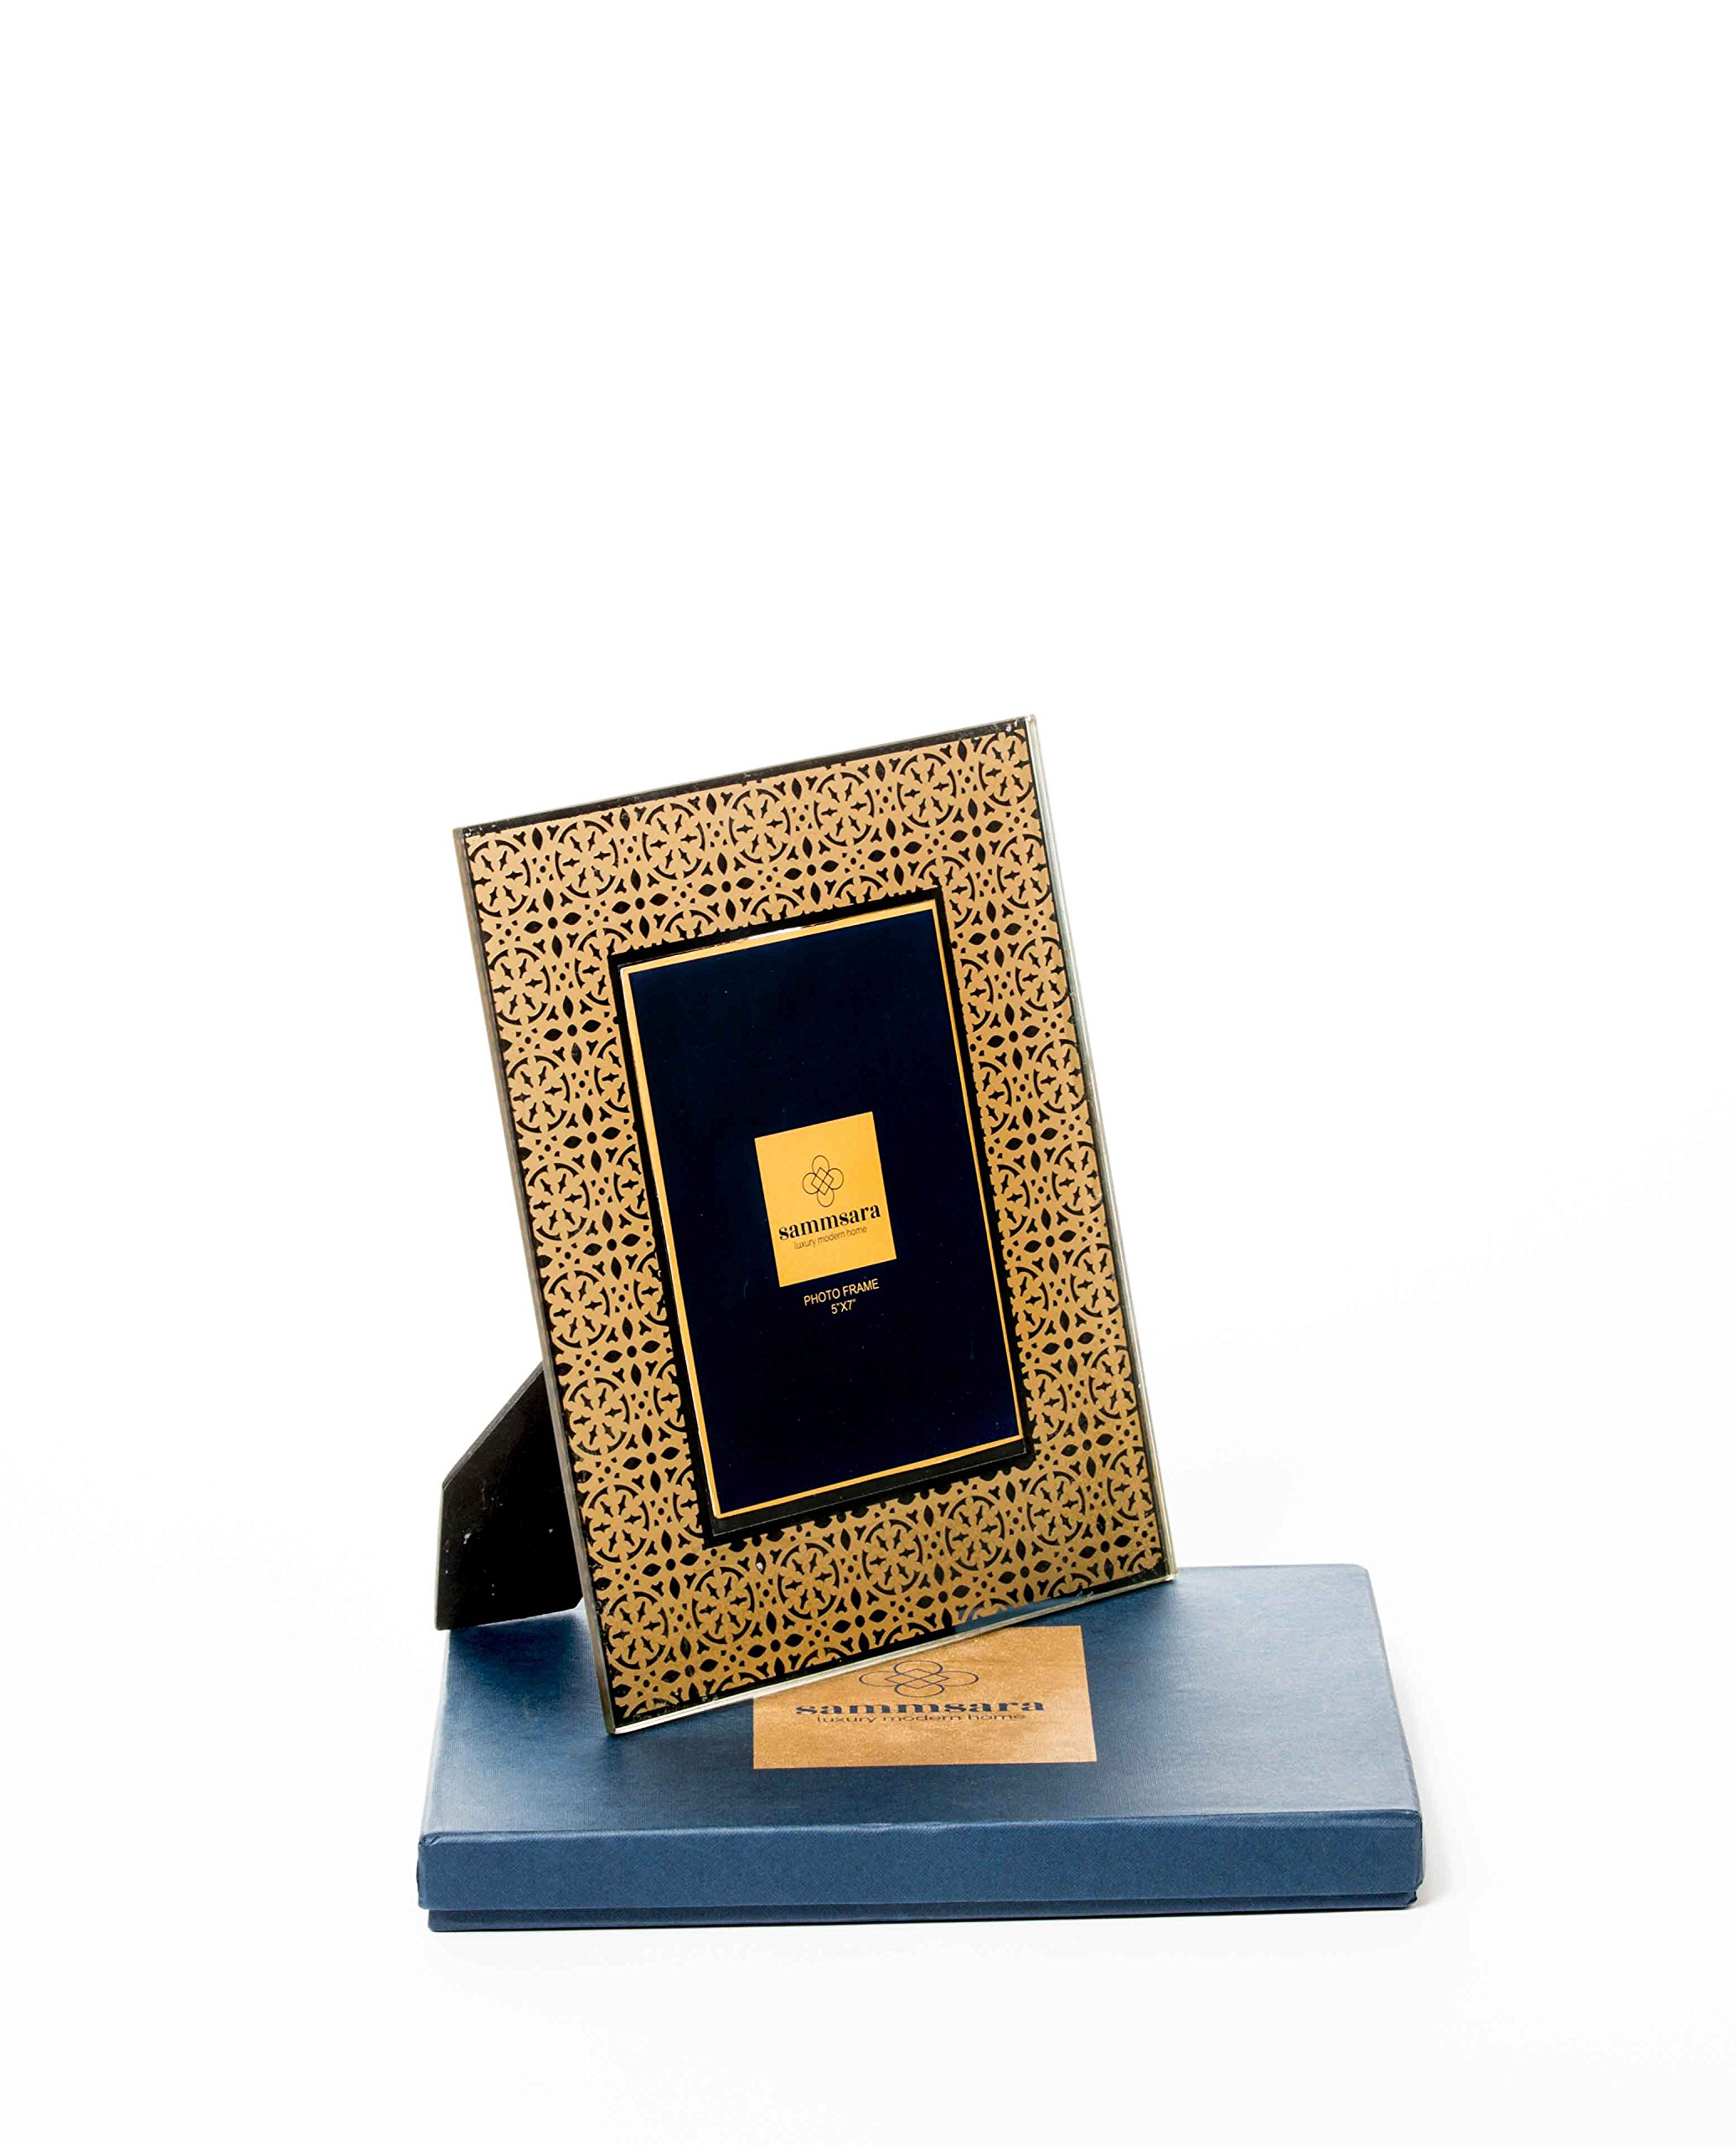 """Sammsara Glass Photo Box Florina Gold Glass Pattern Photo Frame for Table beautiful 5x7 frame """" Inches Photosize with Free Beautiful Gift Box"""